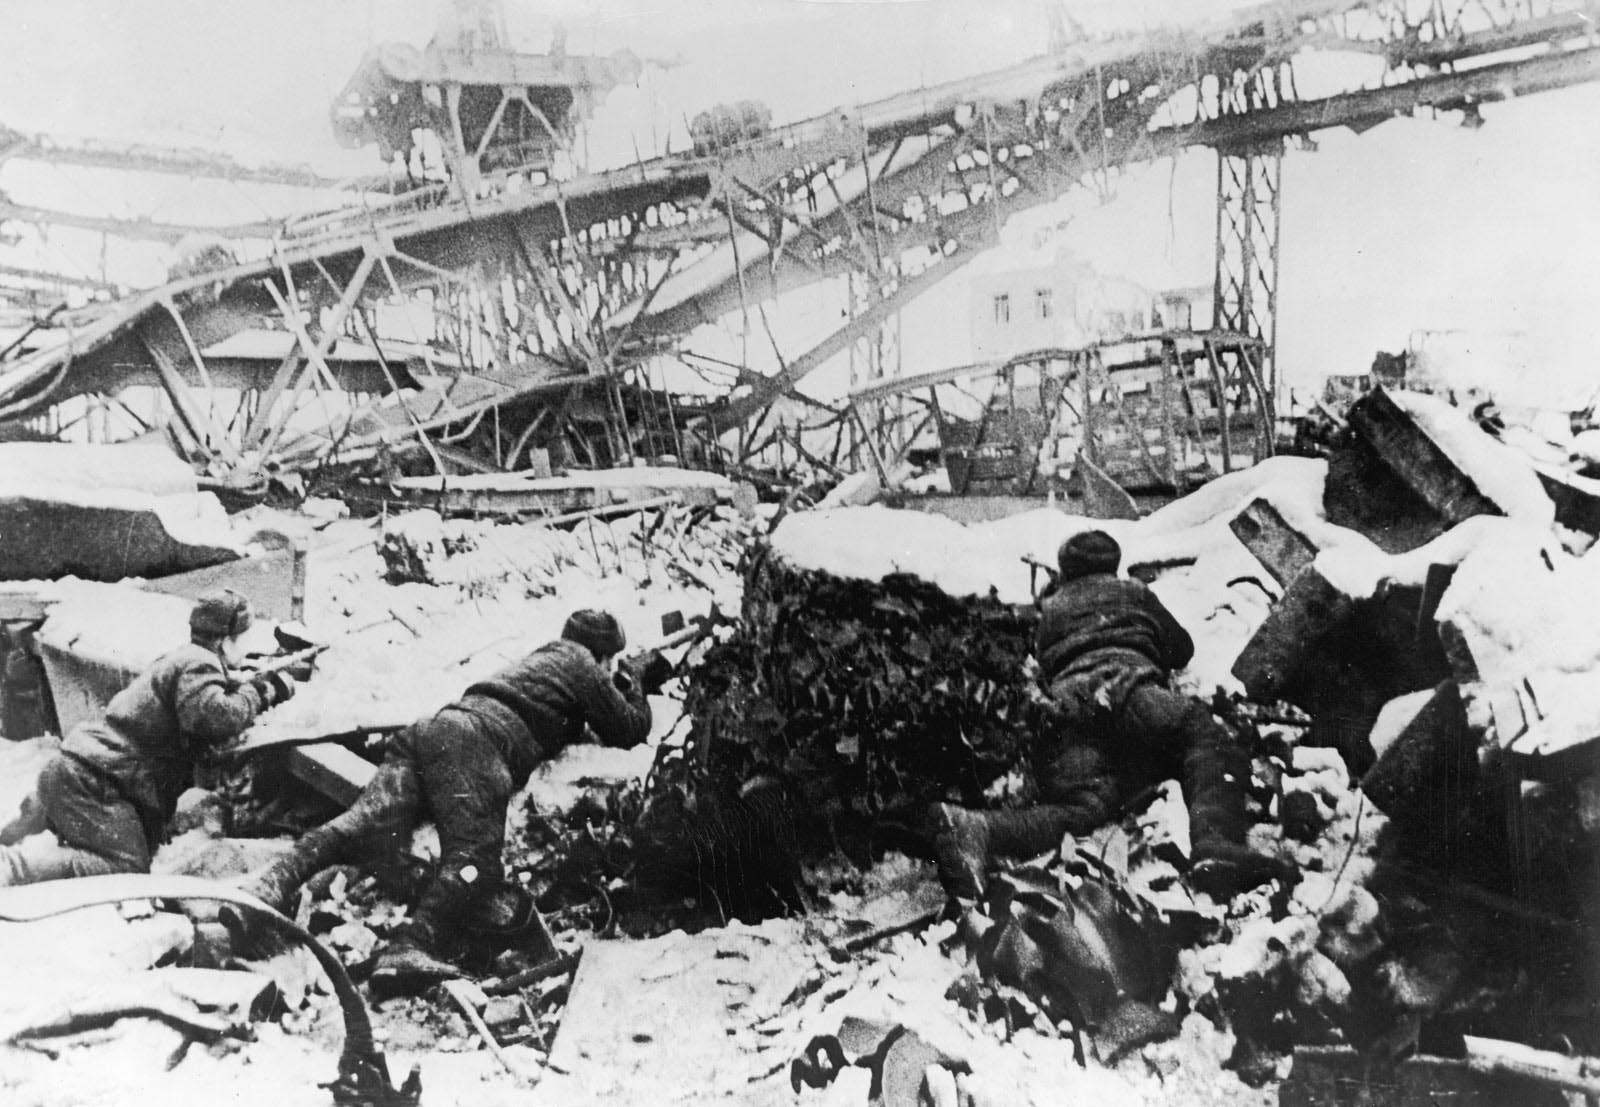 circa 1942:  Russian soldiers aim their rifles from behind snow-covered rubble as they defend the 'Krasnye Oktyabr' (Red October) factory from German troops during the Battle of Stalingrad in World War II, Stalingrad (now Volgograd), USSR (now Russia. The German troops intended to win the factory as a Christmas present for Hitler, but the Russian troops held it for the duration of the conflict.  (Photo by Hulton Archive/Getty Images)